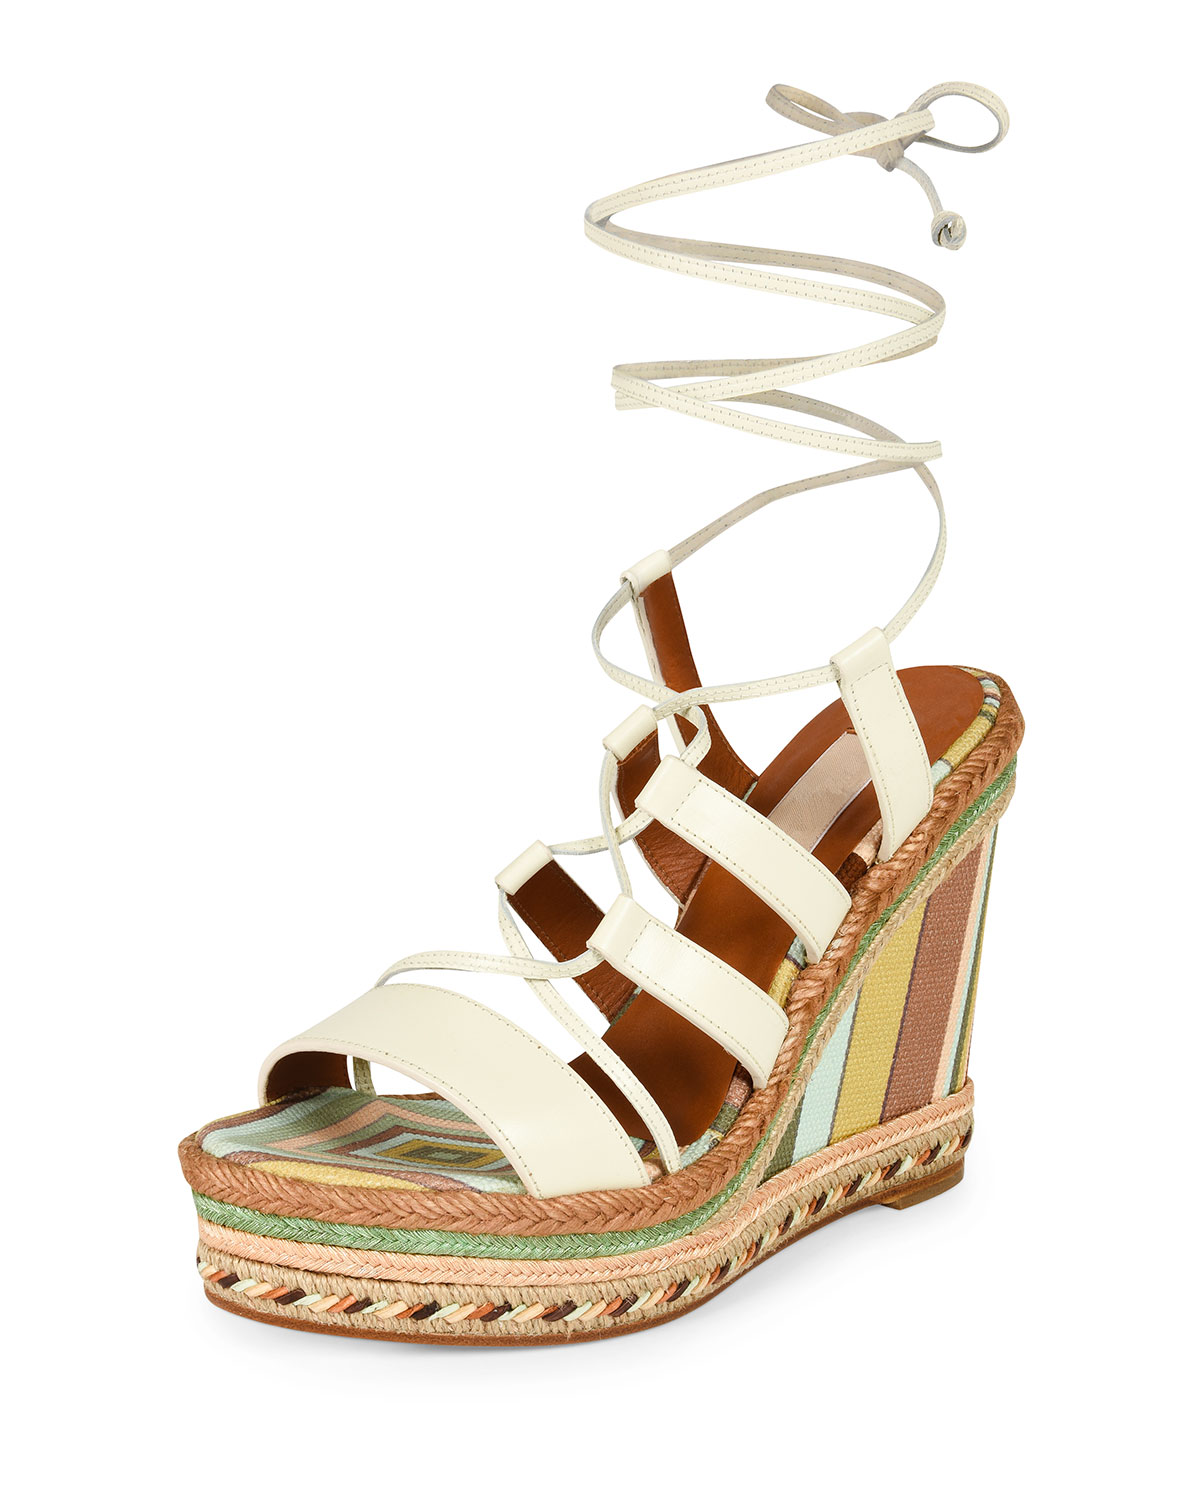 Leather Lace-Up Espadrille Sandal, Ivory/Green Tea